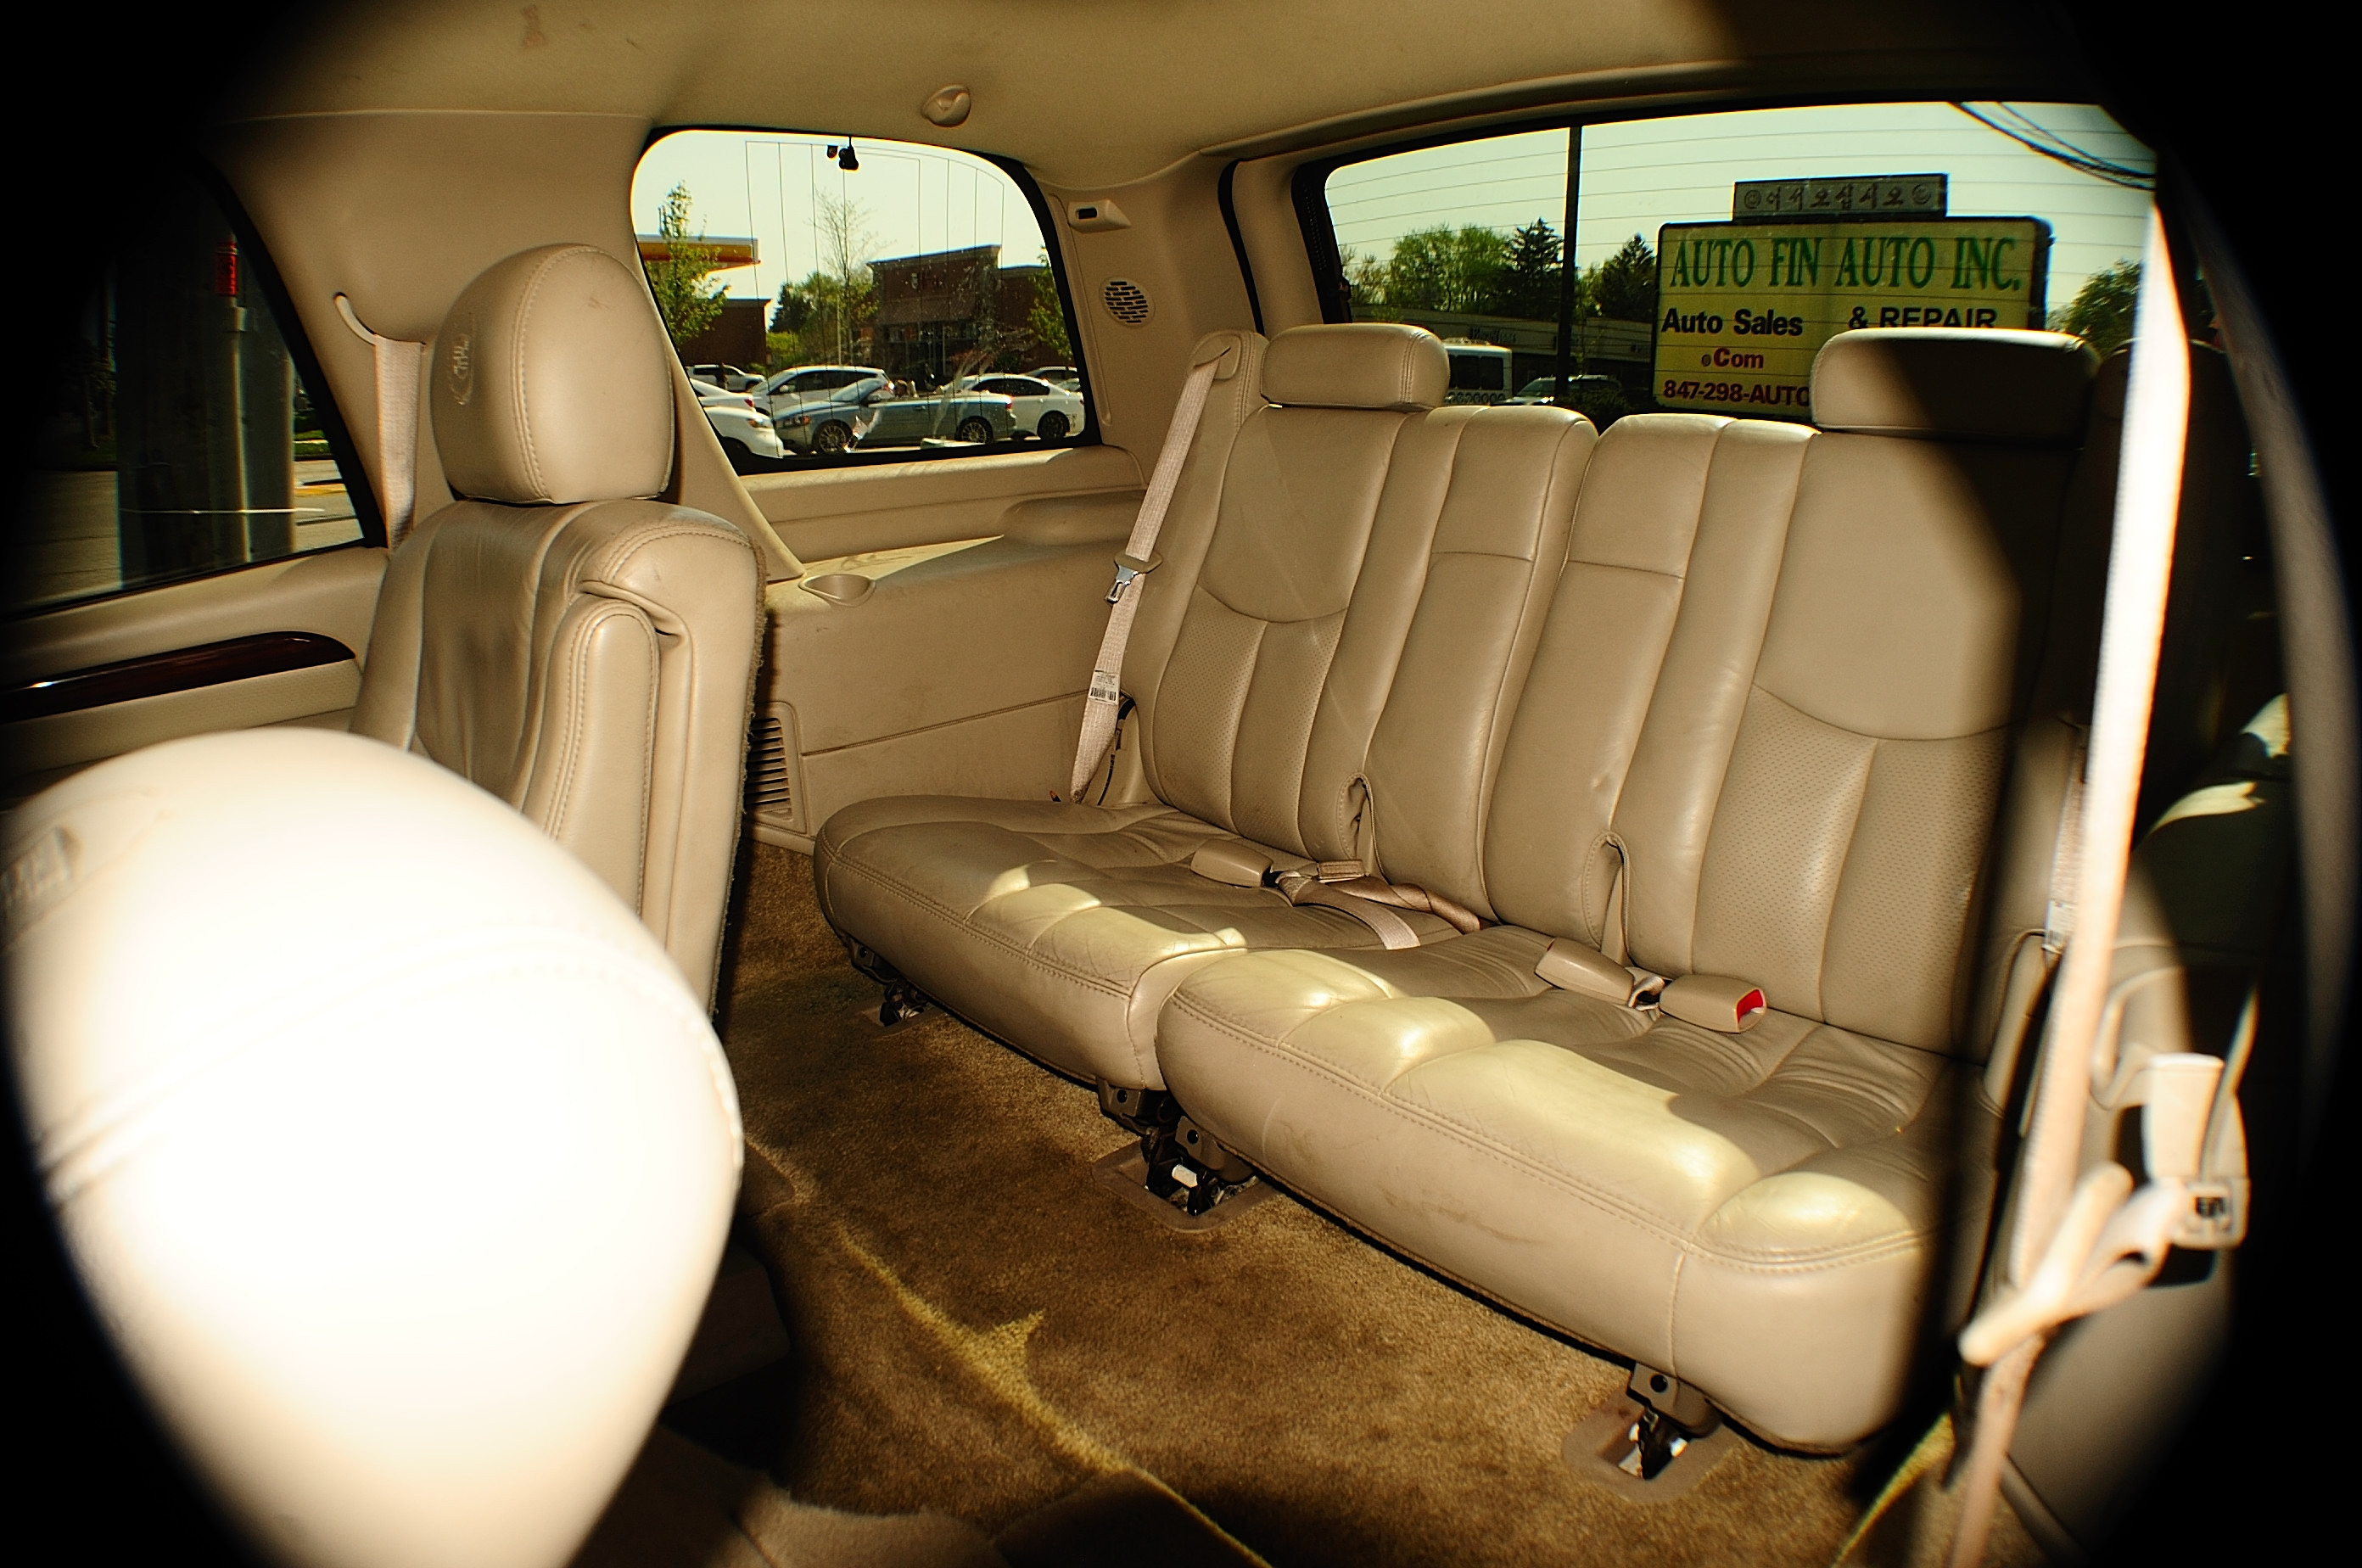 2003 Cadillac Escalade White TV Used SUV car sale DeKalb Des Plaines Elgin Elmhurst Evanston